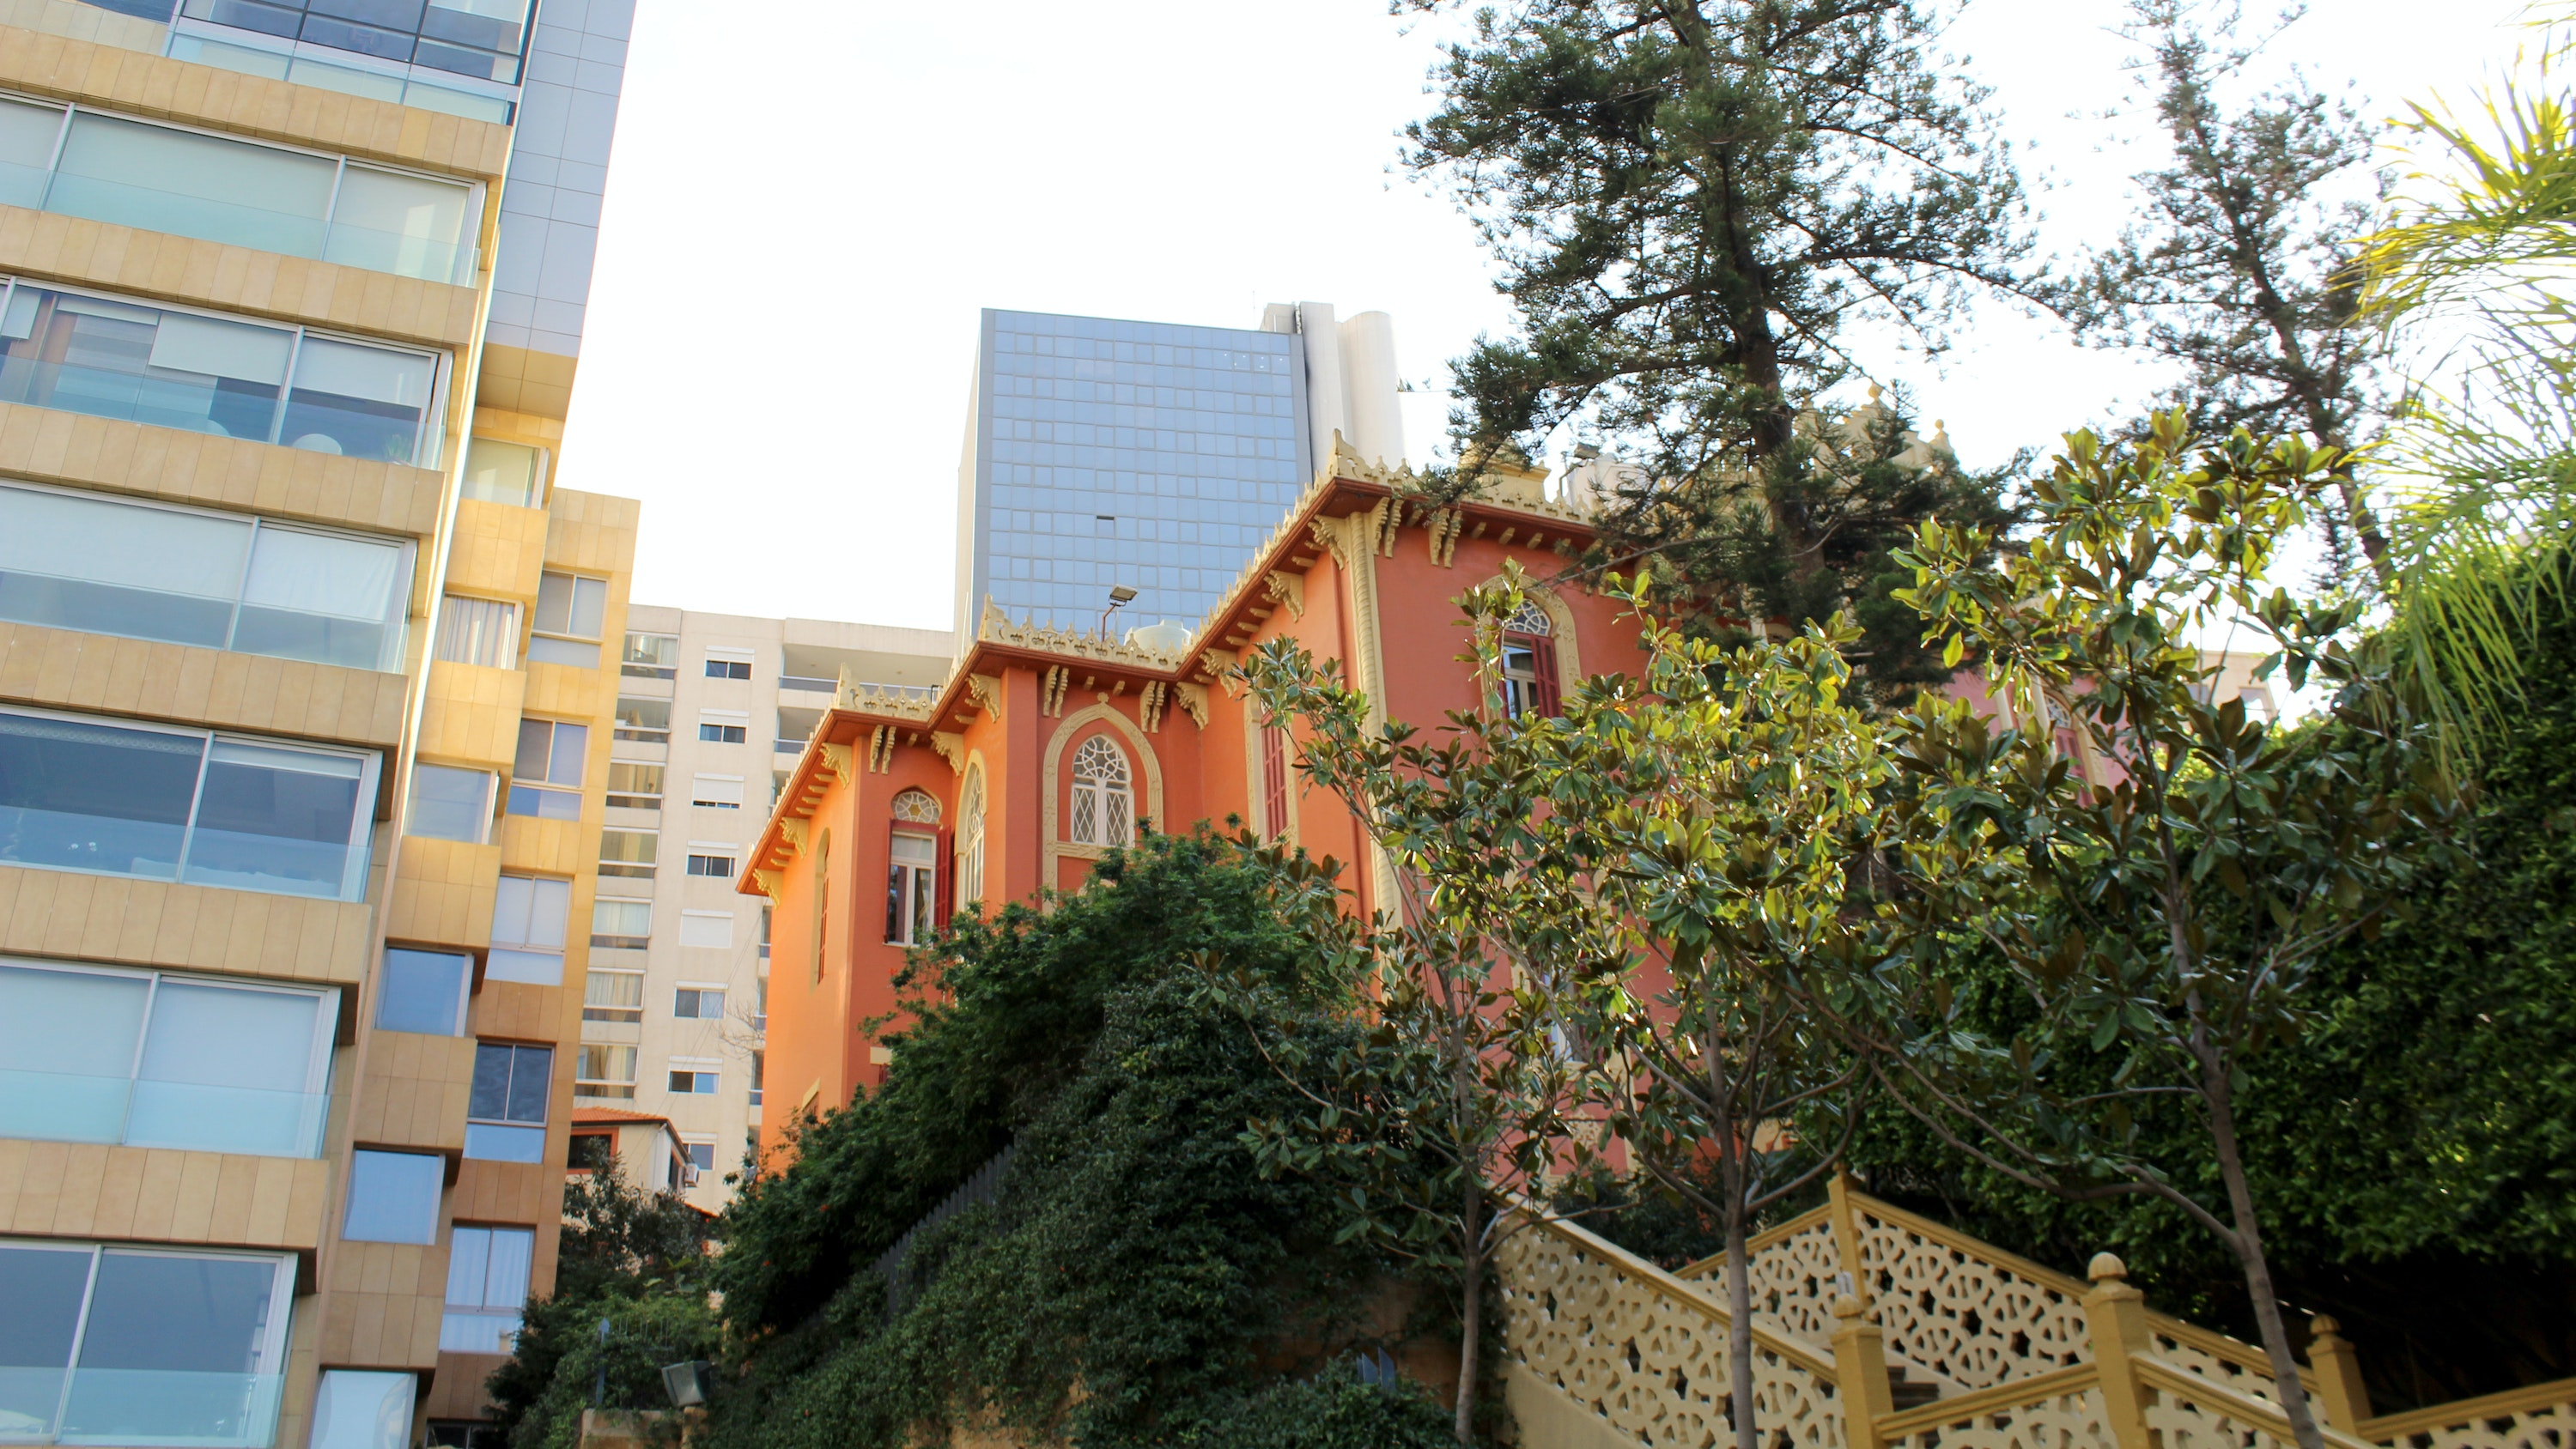 A mix of architectural styles along a street in Beirut